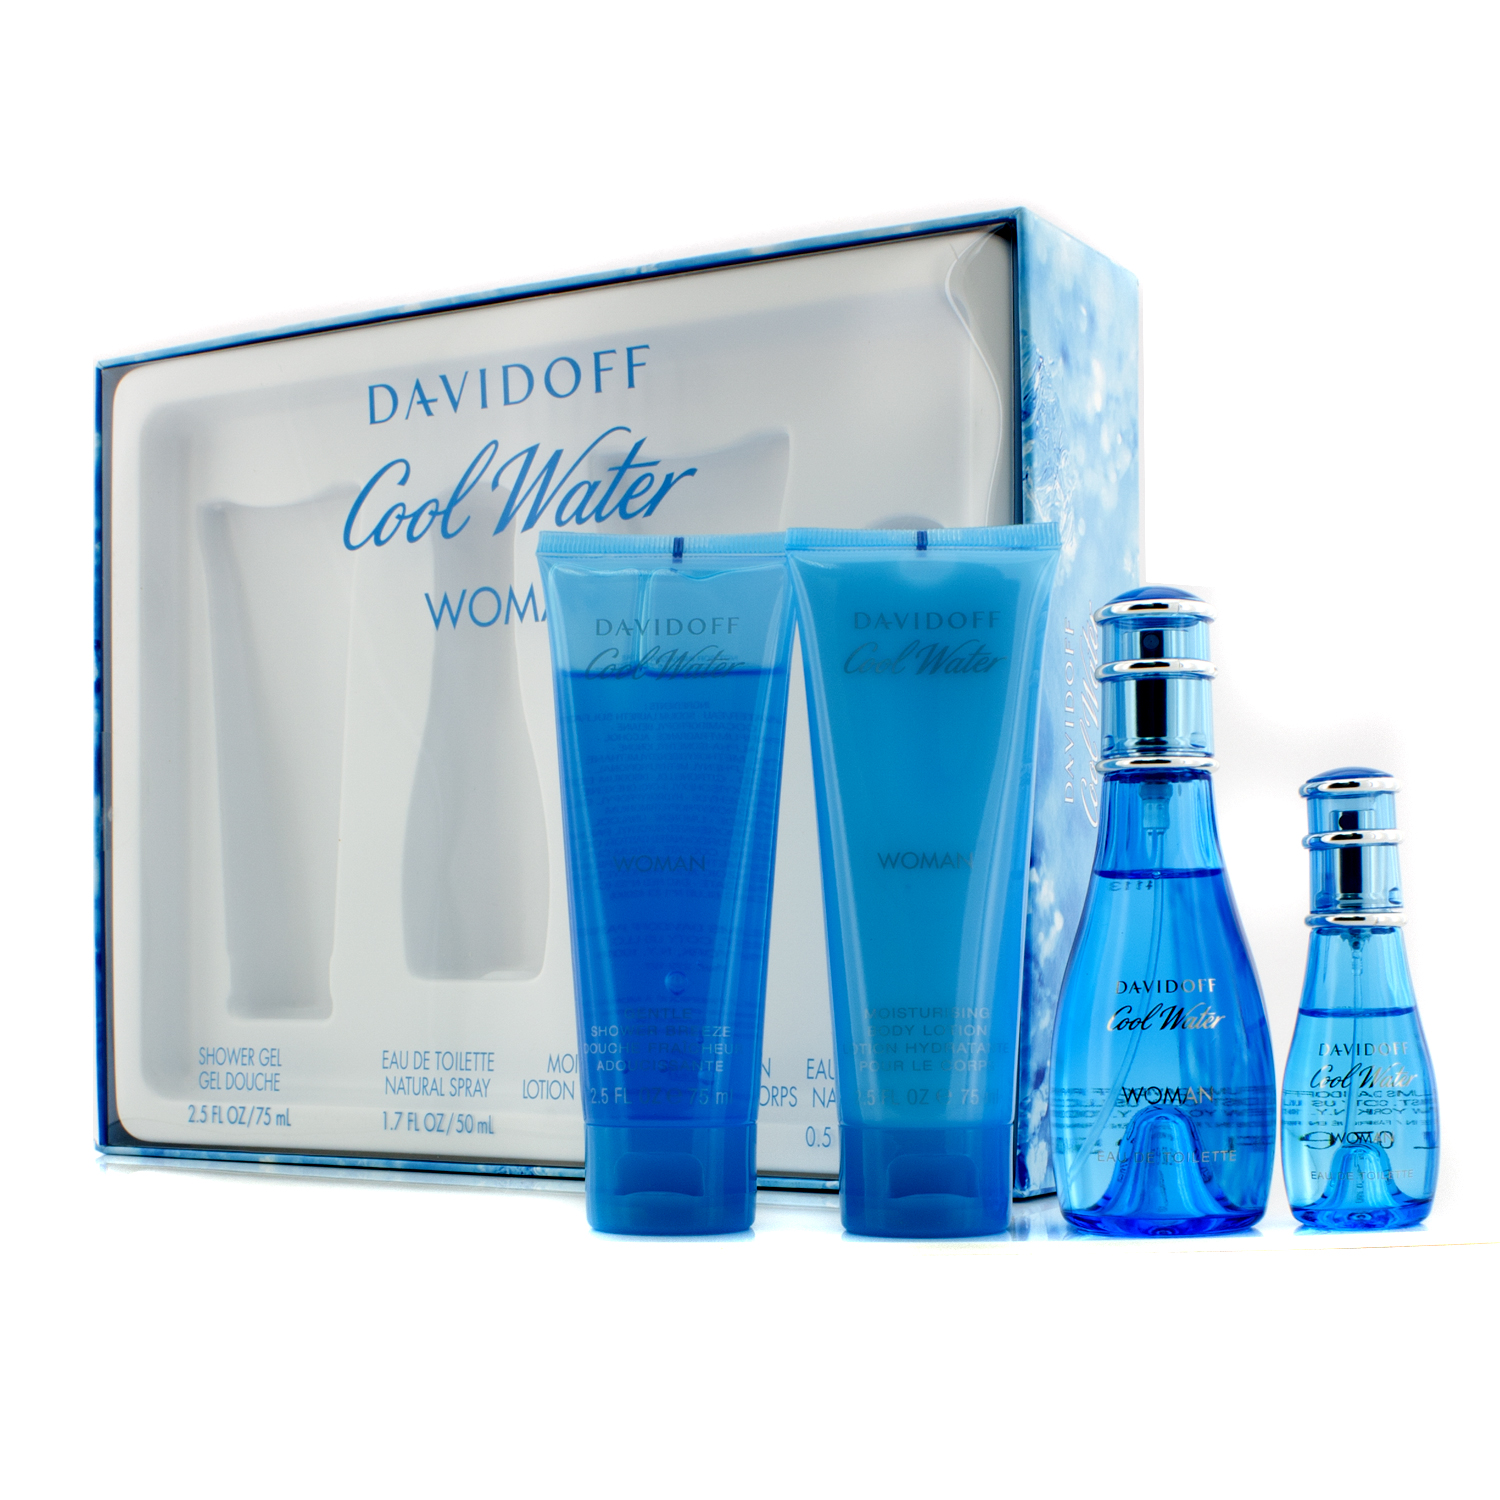 Davidoff - Cool Water Coffret: Eau De Toilette Spray 50ml/1.7oz + Eau De Toilette Spray 15ml/0.5oz + Body Lotion 75ml/2.5oz + Shower Gel 75ml/2.5oz - 4pcs